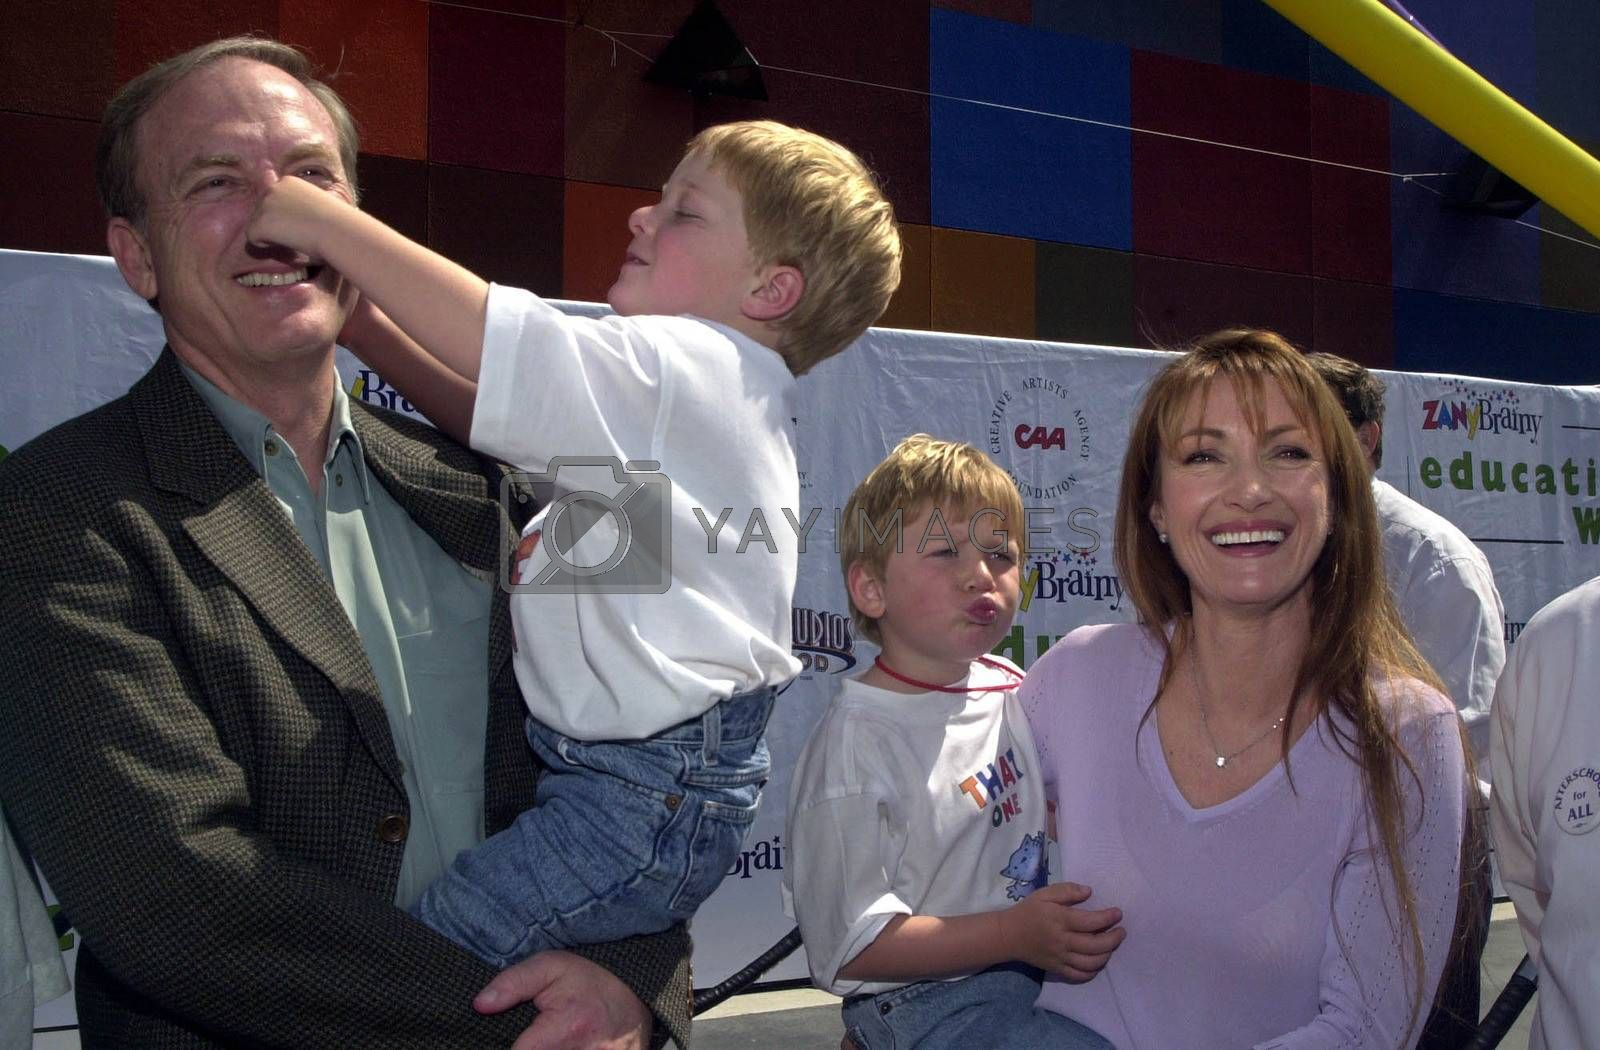 Jane Seymour and James Keach and Kids at the Education Works benefit to promote after-school activities, Universal Studios Hollywood, 03-25-00